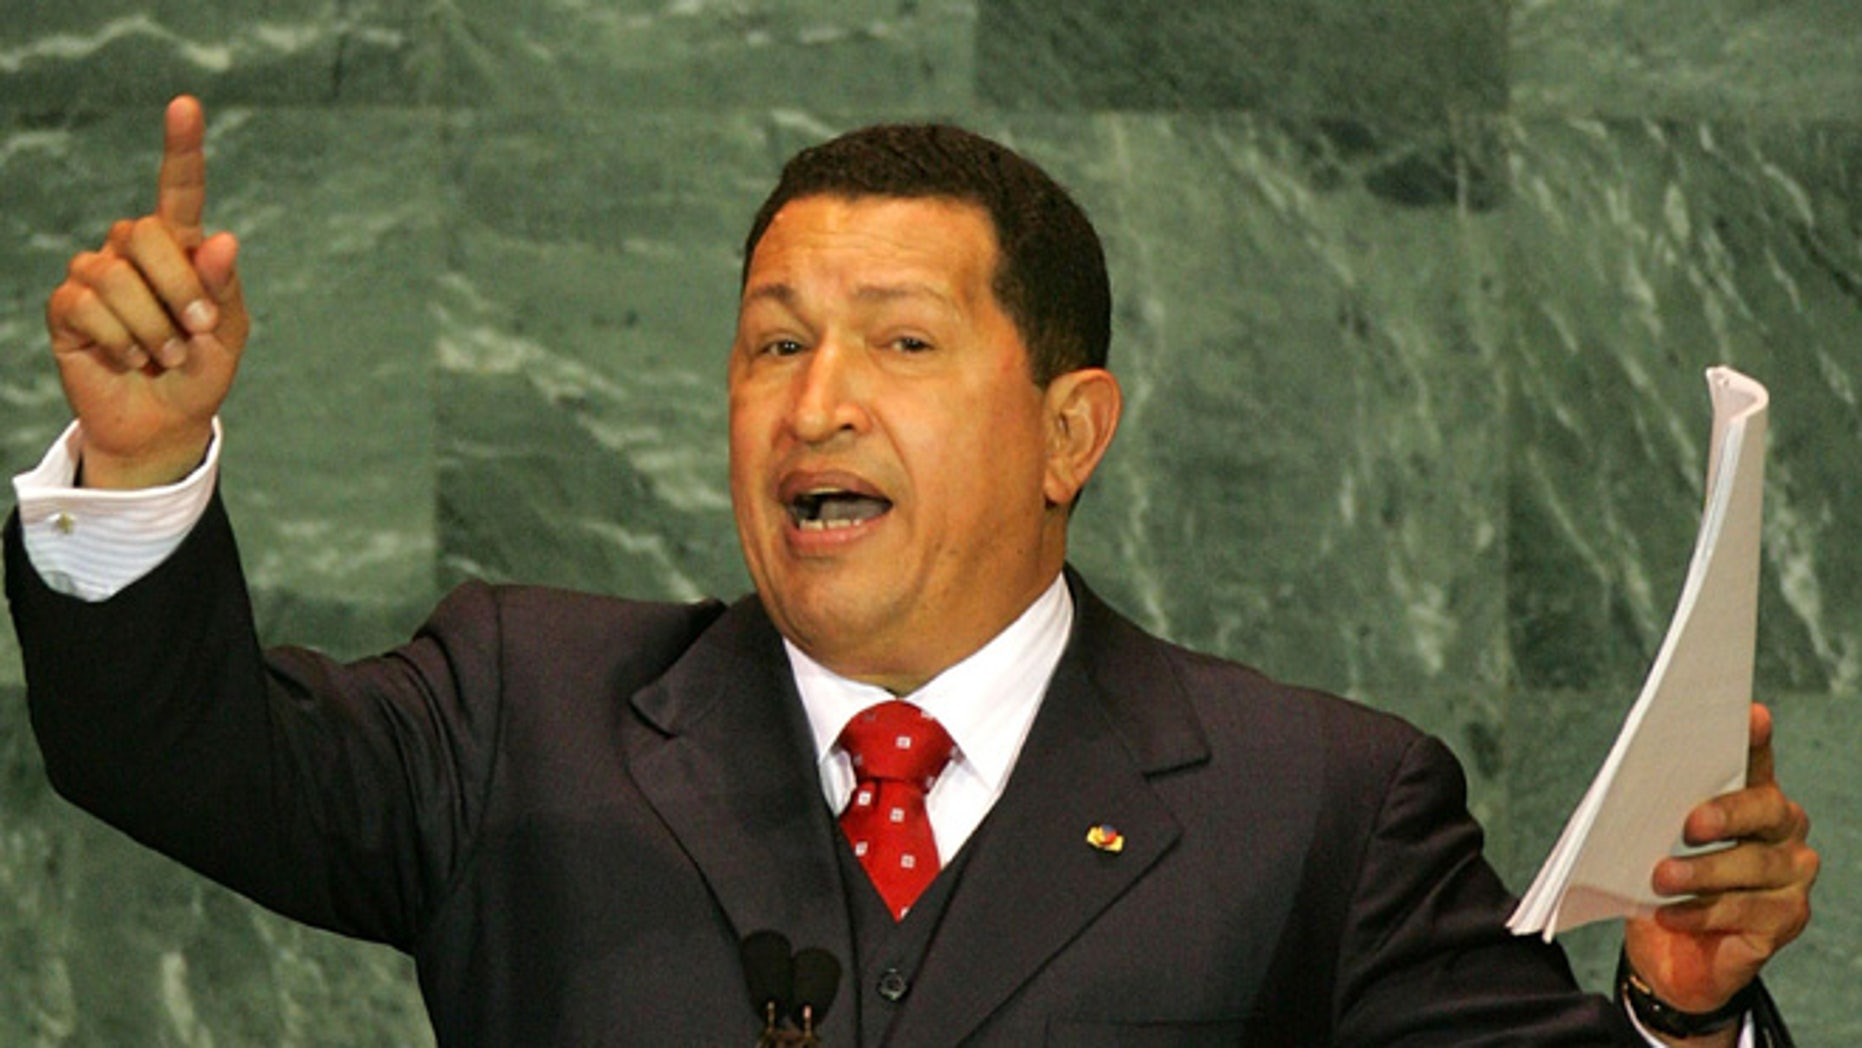 NEW YORK - SEPTEMBER 15:  (ALTERNATIVE CROP) Venezuelan President Hugo Chavez addresses the United Nations General Assembly September 15, 2005 in New York City. World leaders gathered for the second day of the summit marking the 60th anniversary of the world organization.  (Photo by Daniel Berehulak/Getty `Images)